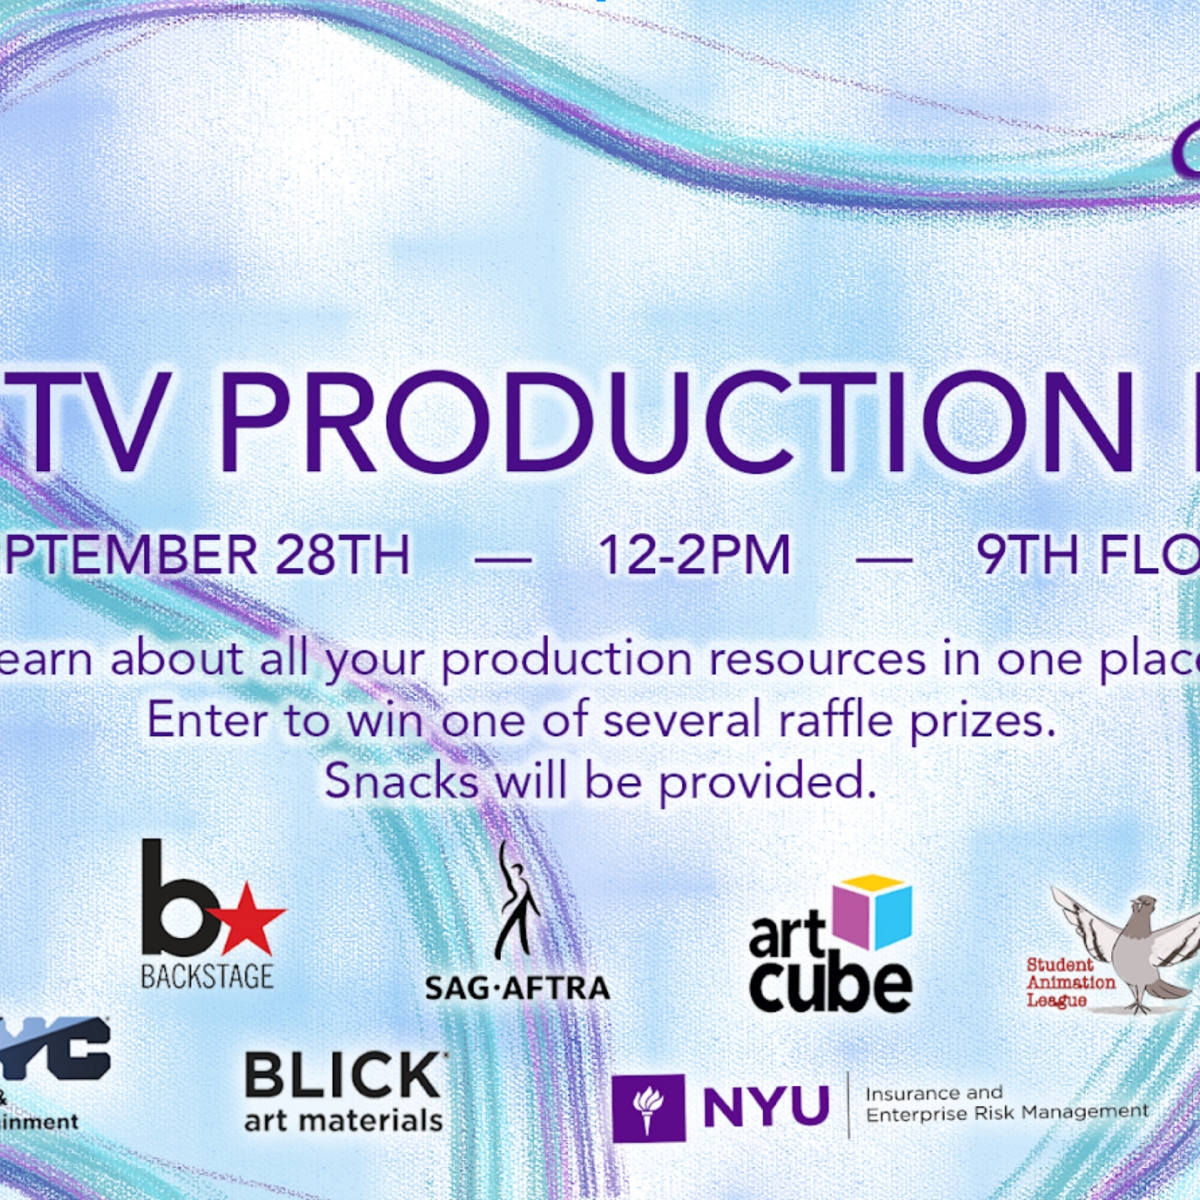 UGFTV Production Fair